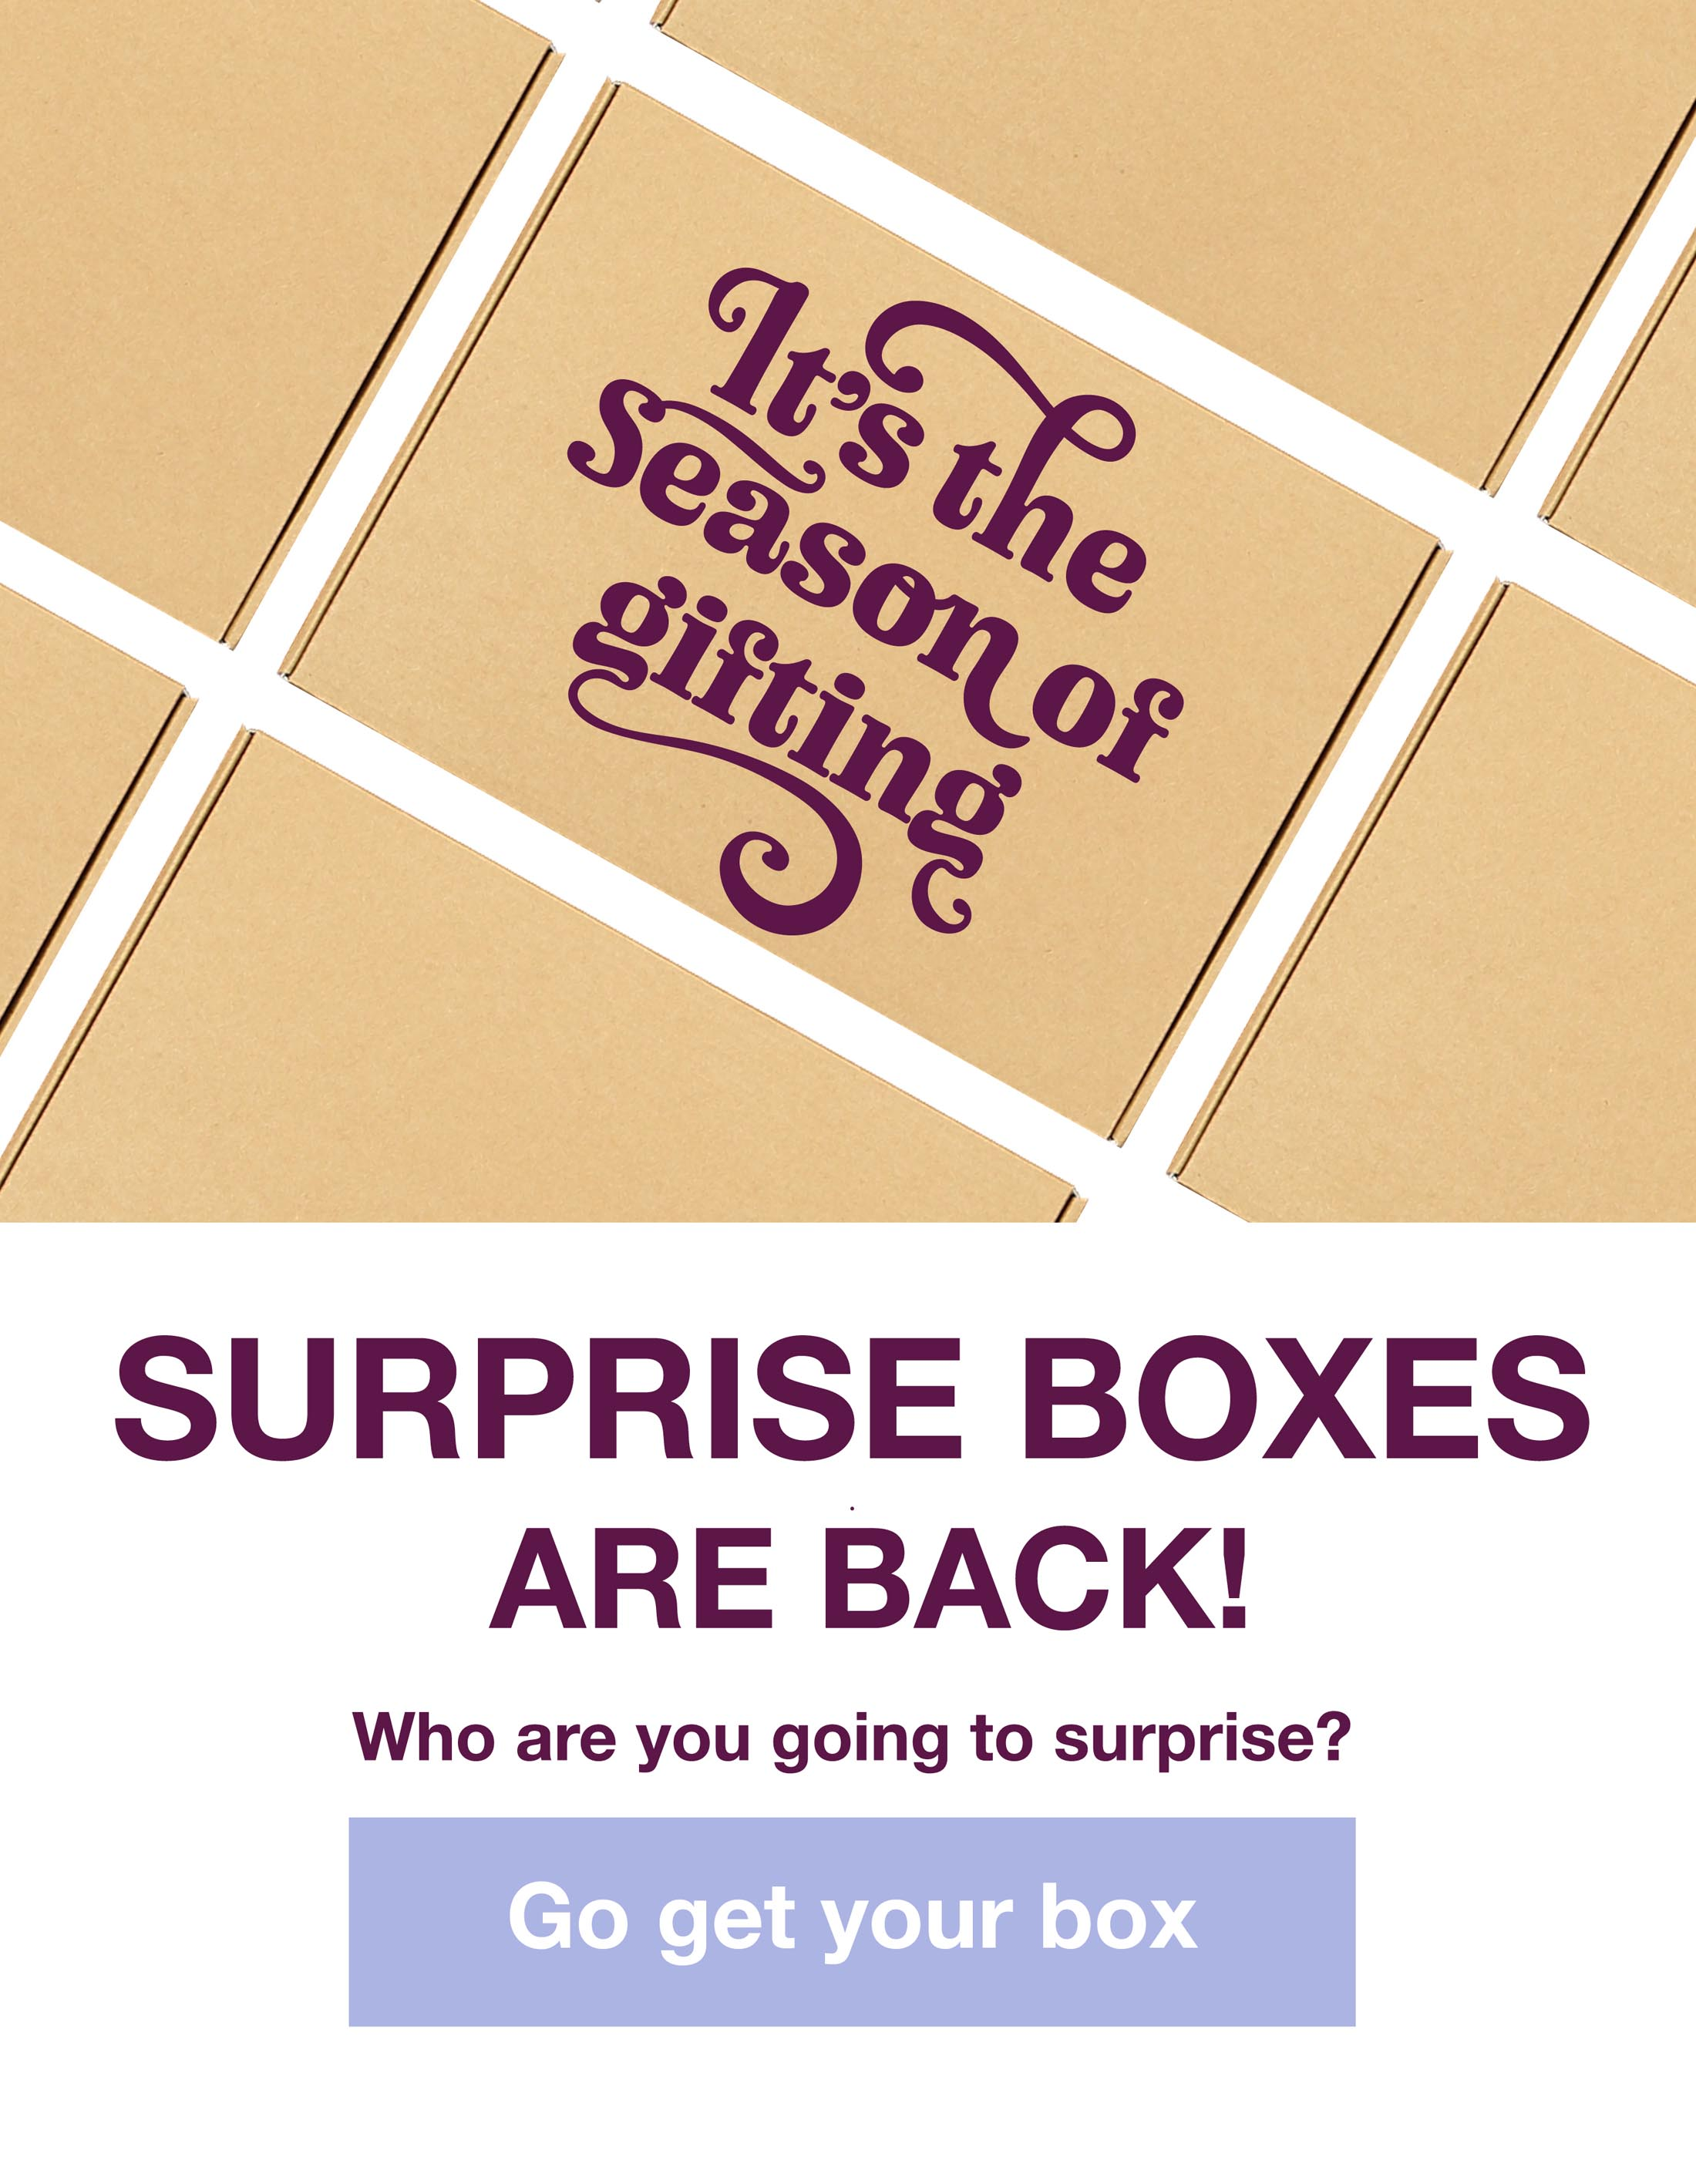 Surprise boxes are back!